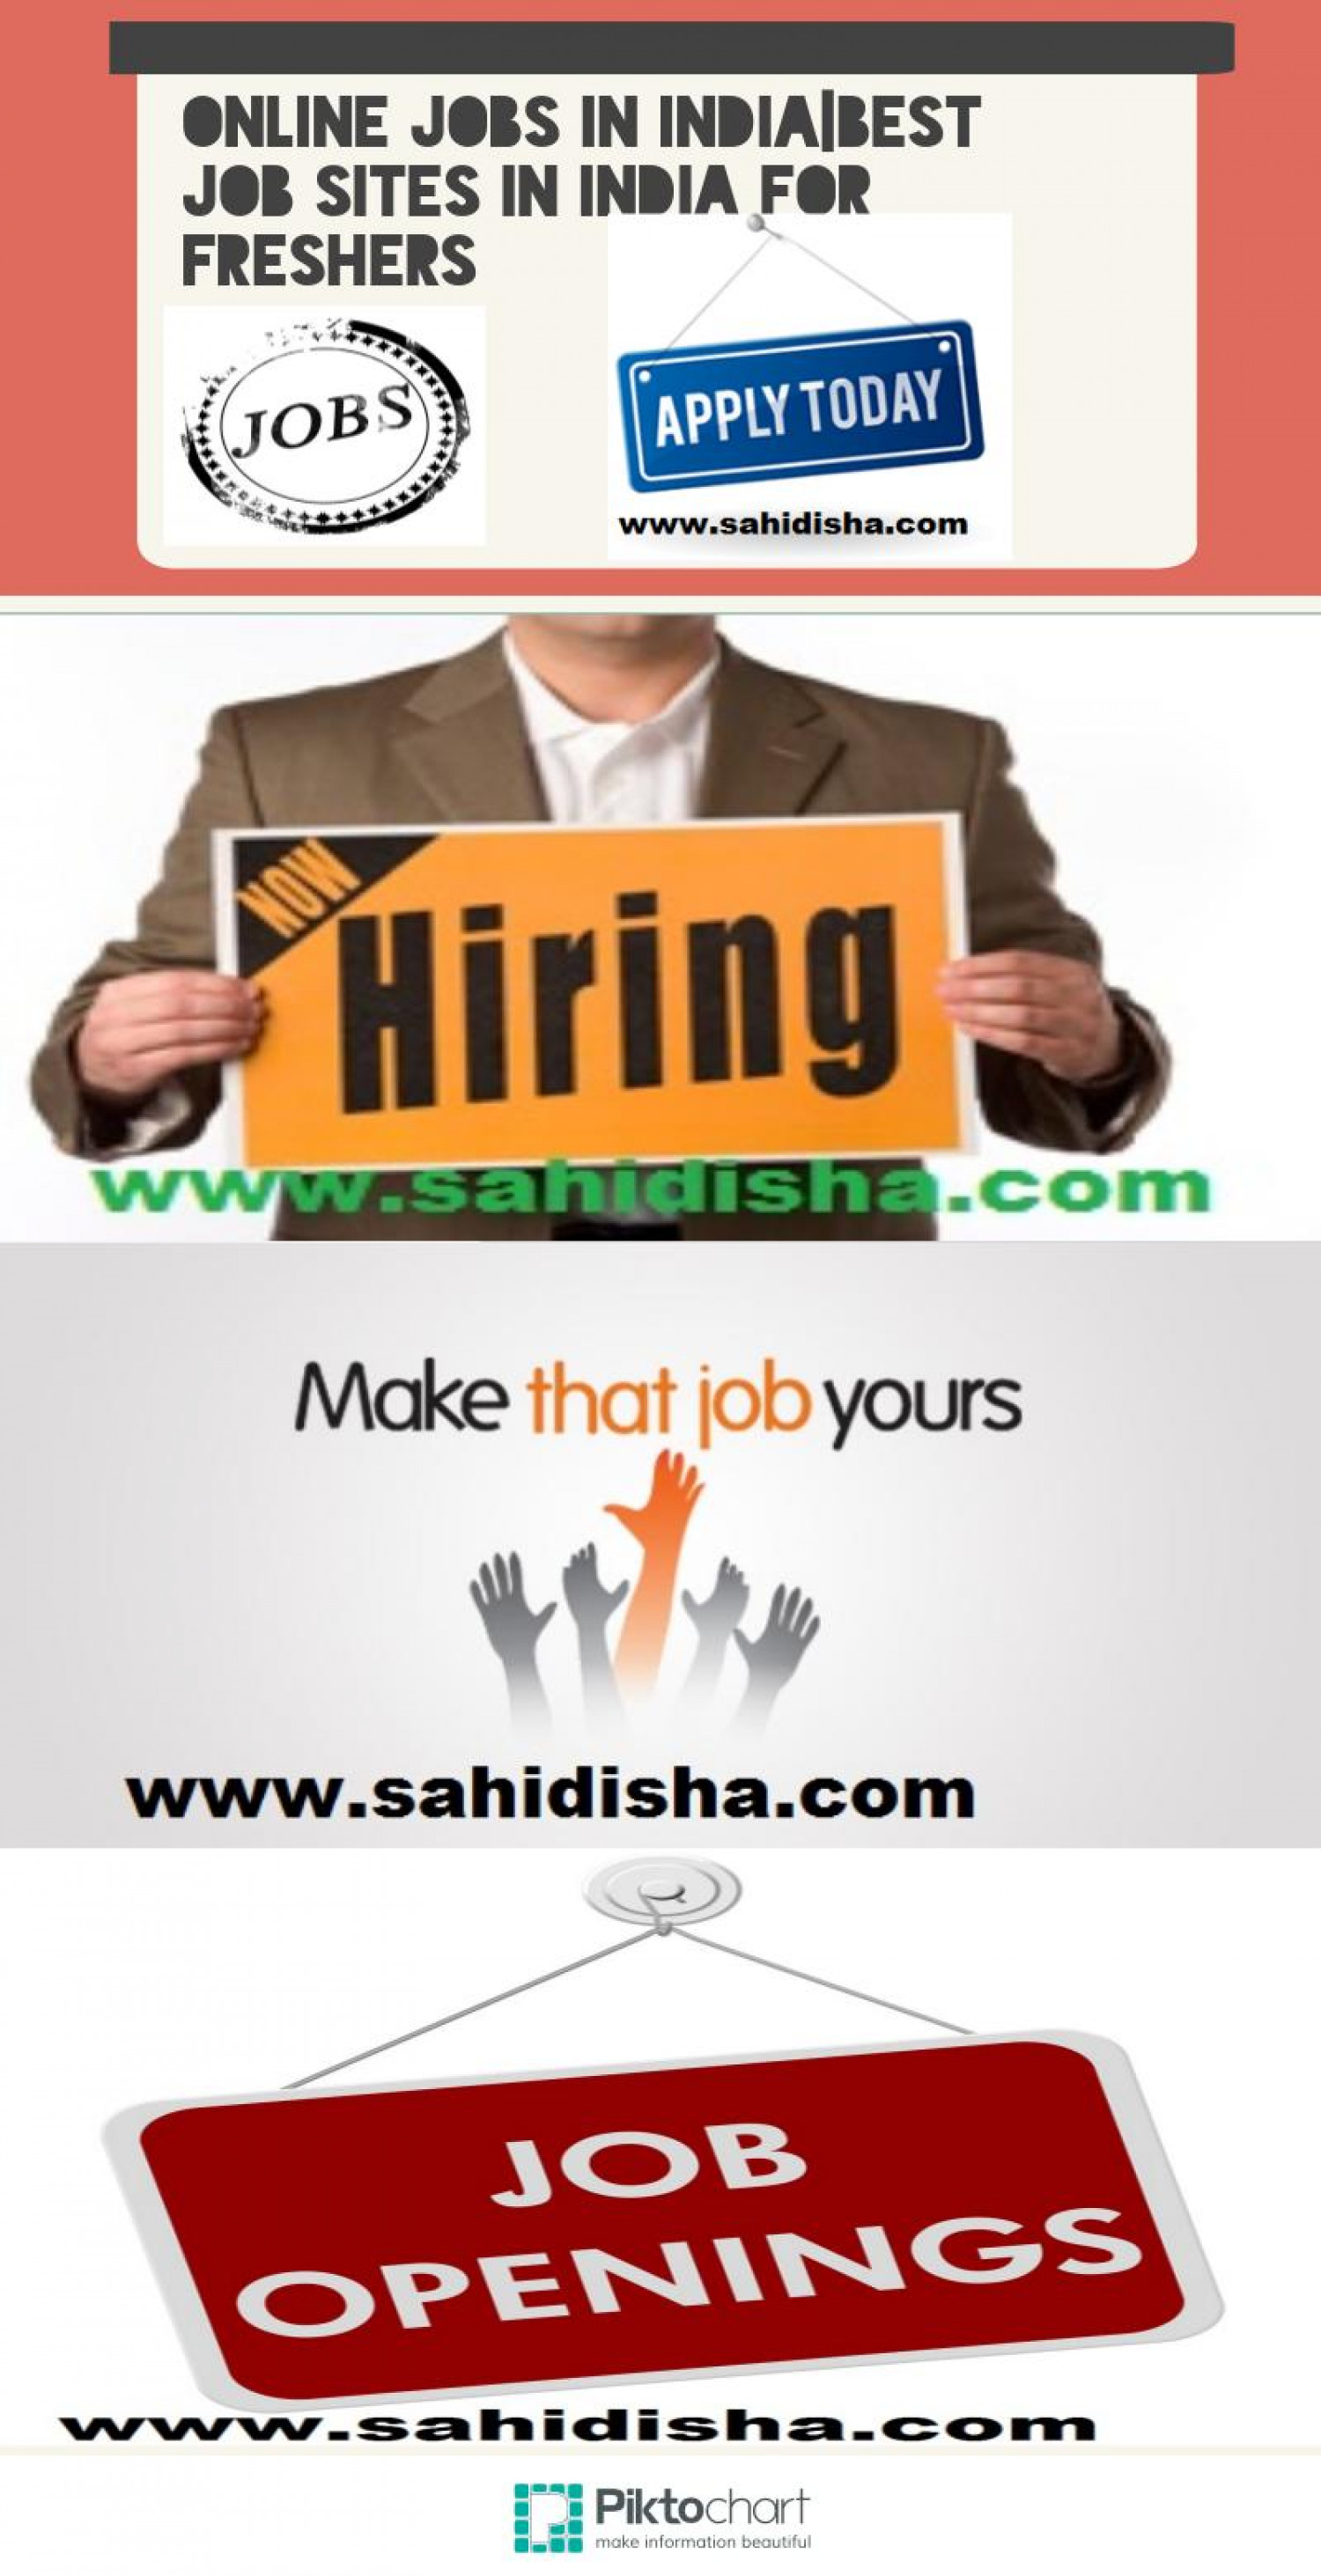 online jobs in best job sites in for freshers ly online jobs in best job sites in for freshers infographic